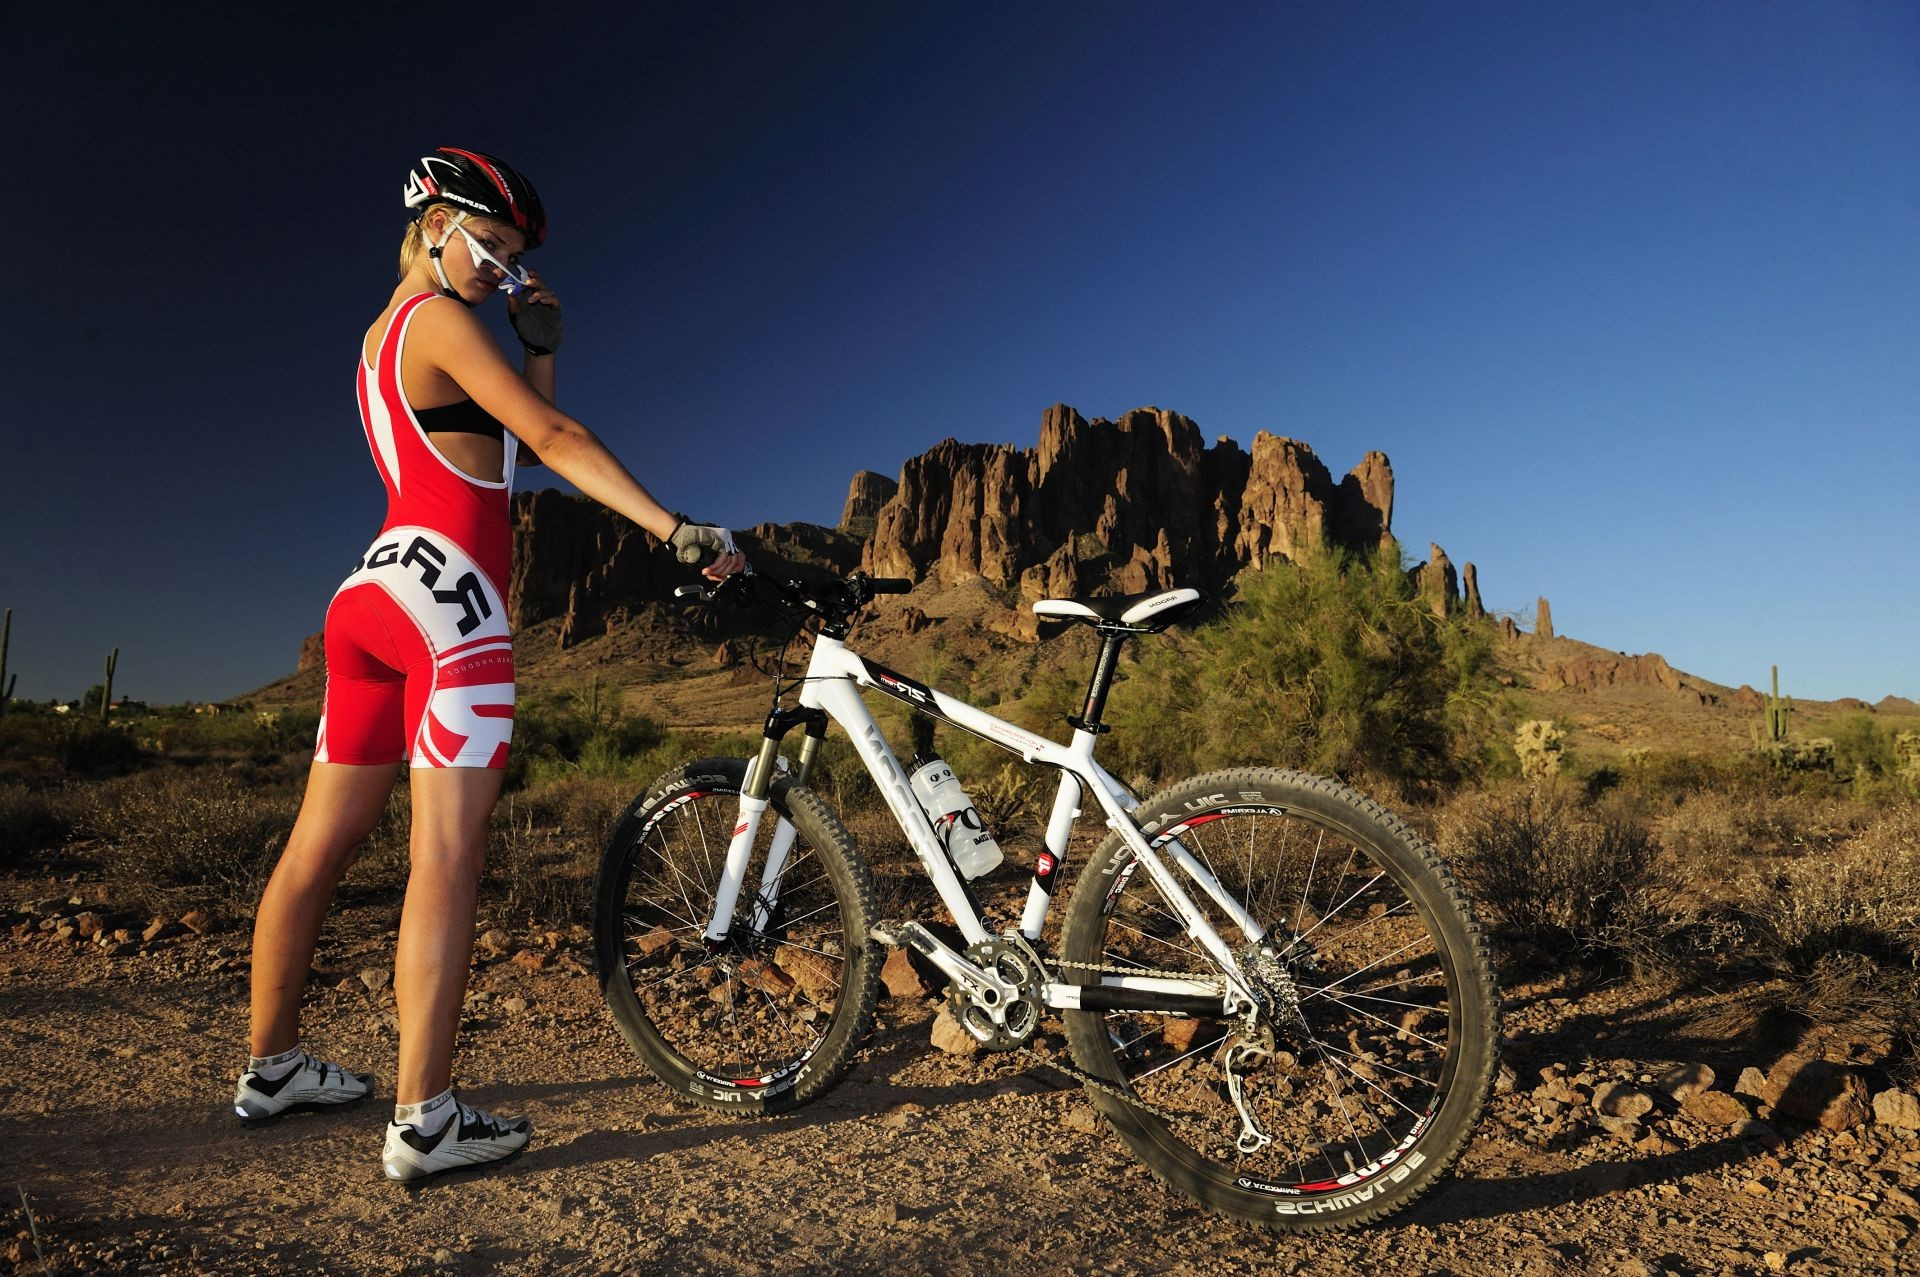 Cross Country Mountain Bike Girl IPhone Wallpapers For Free